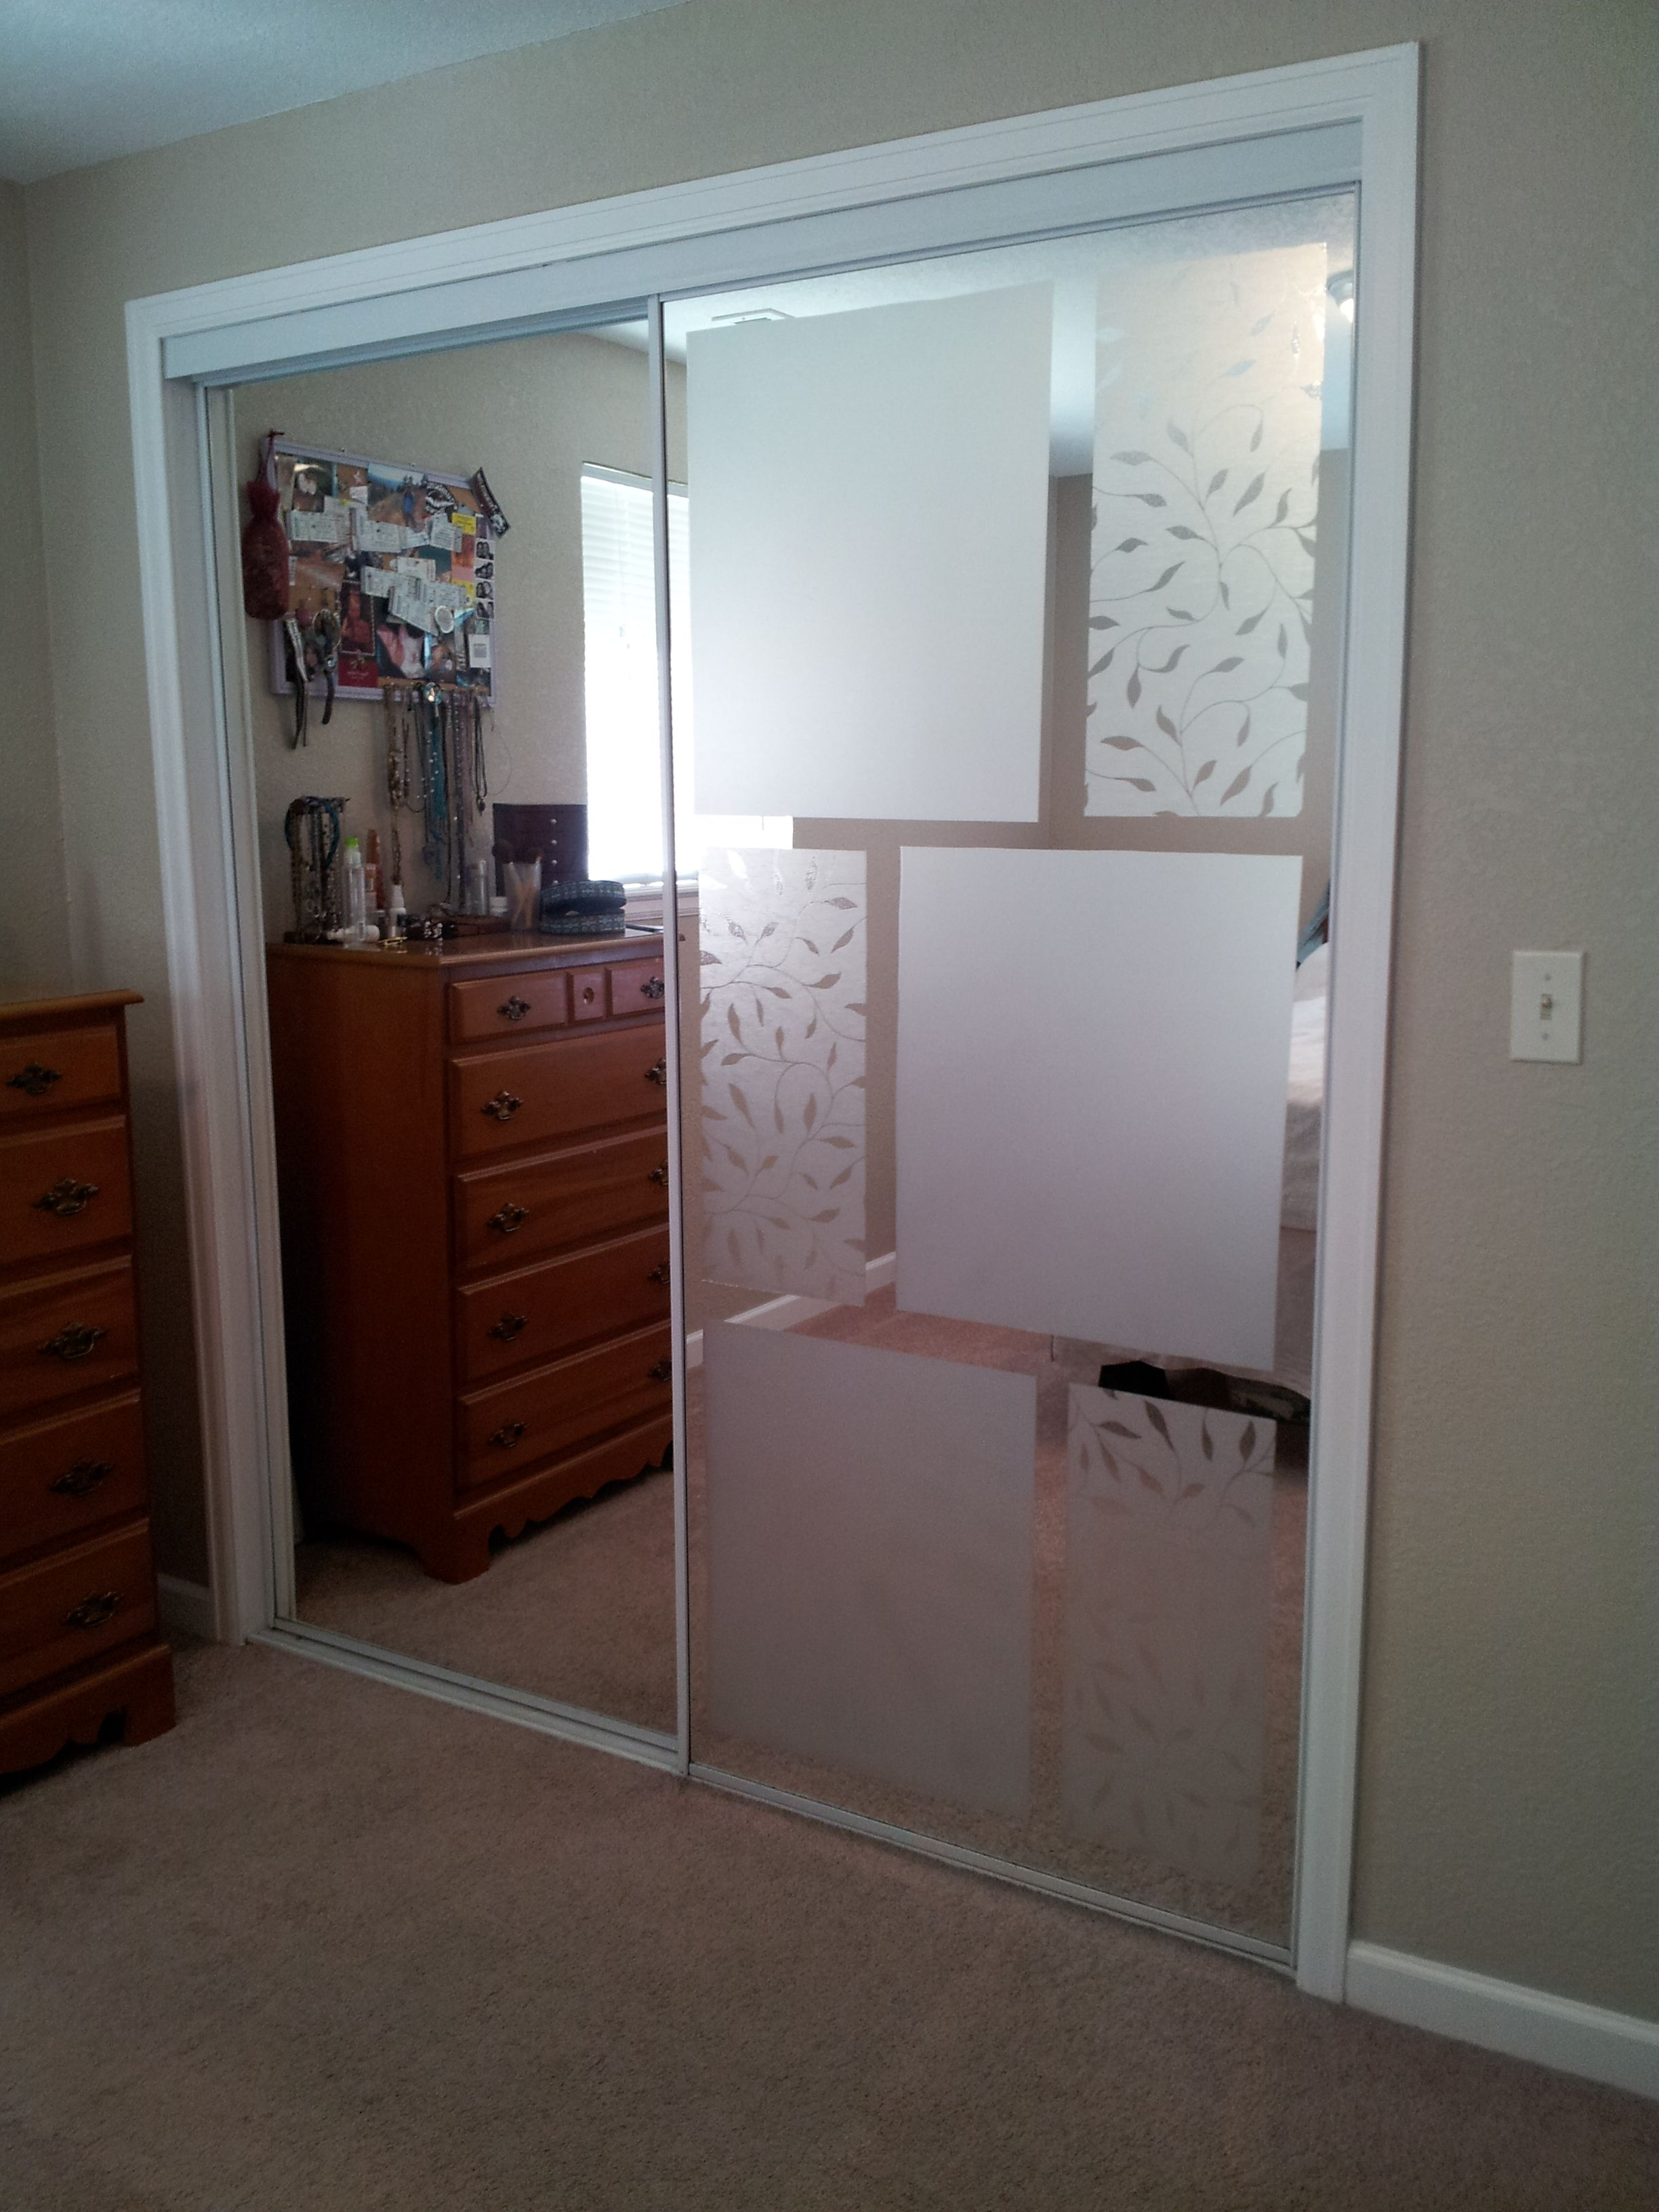 Bedroom Door Covers Used Adhesive Free Window Frosting To Cover Up Mirrored